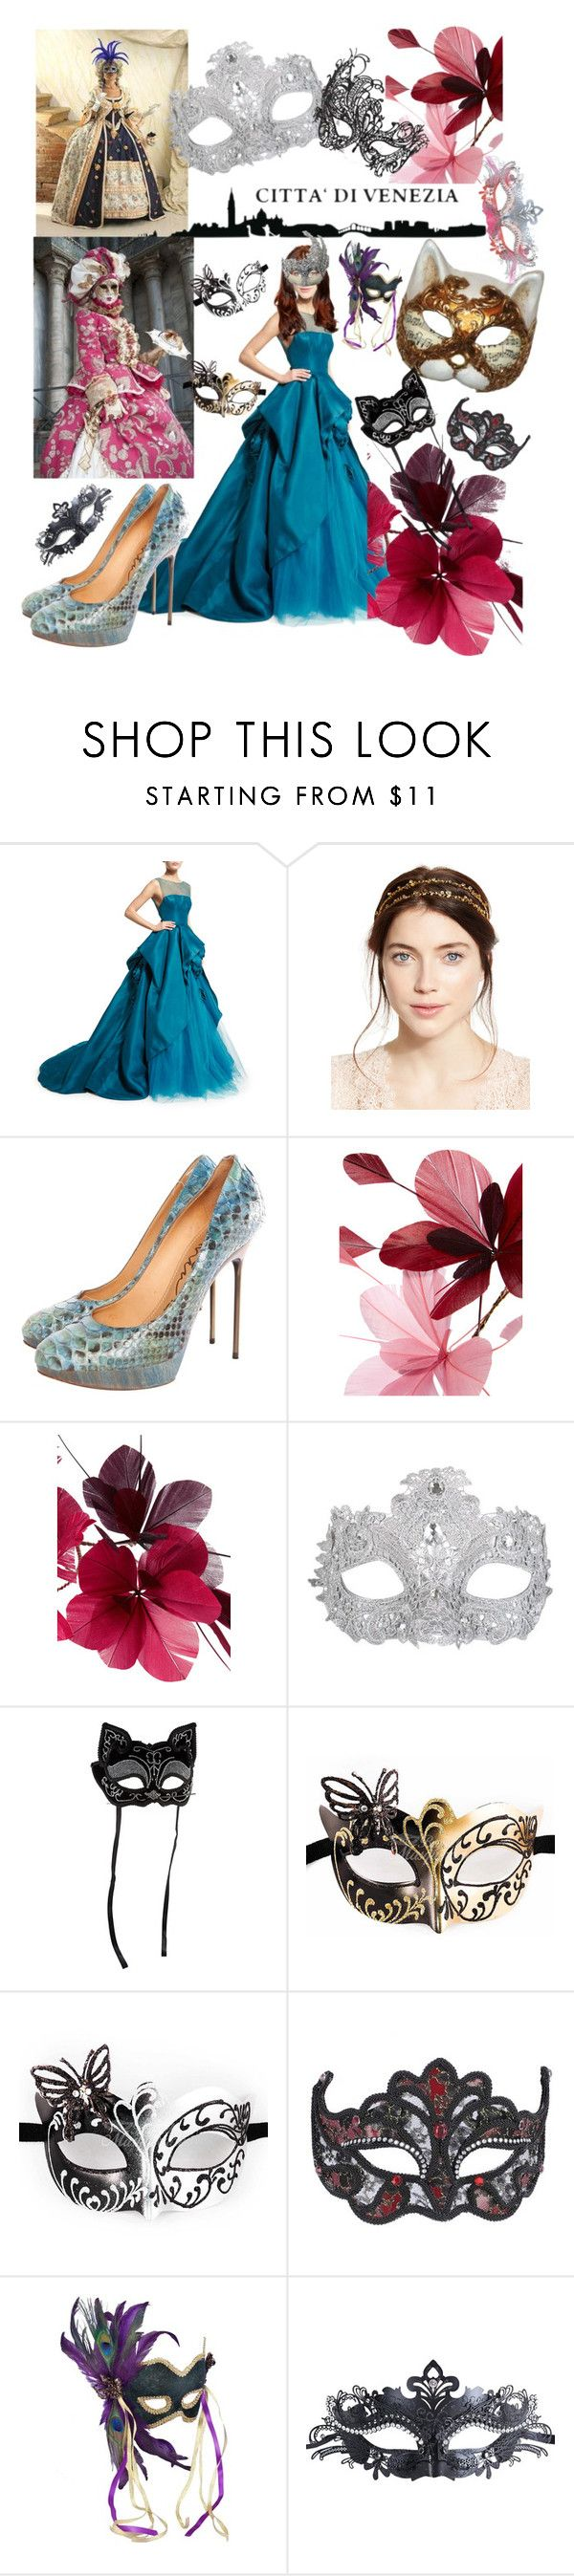 """""""Venice Carnival"""" by csidlo17 ❤ liked on Polyvore featuring Monique Lhuillier, Jennifer Behr, Masquerade, Lanvin, Valentino, Jacobson Hat Company and Buy Seasons"""